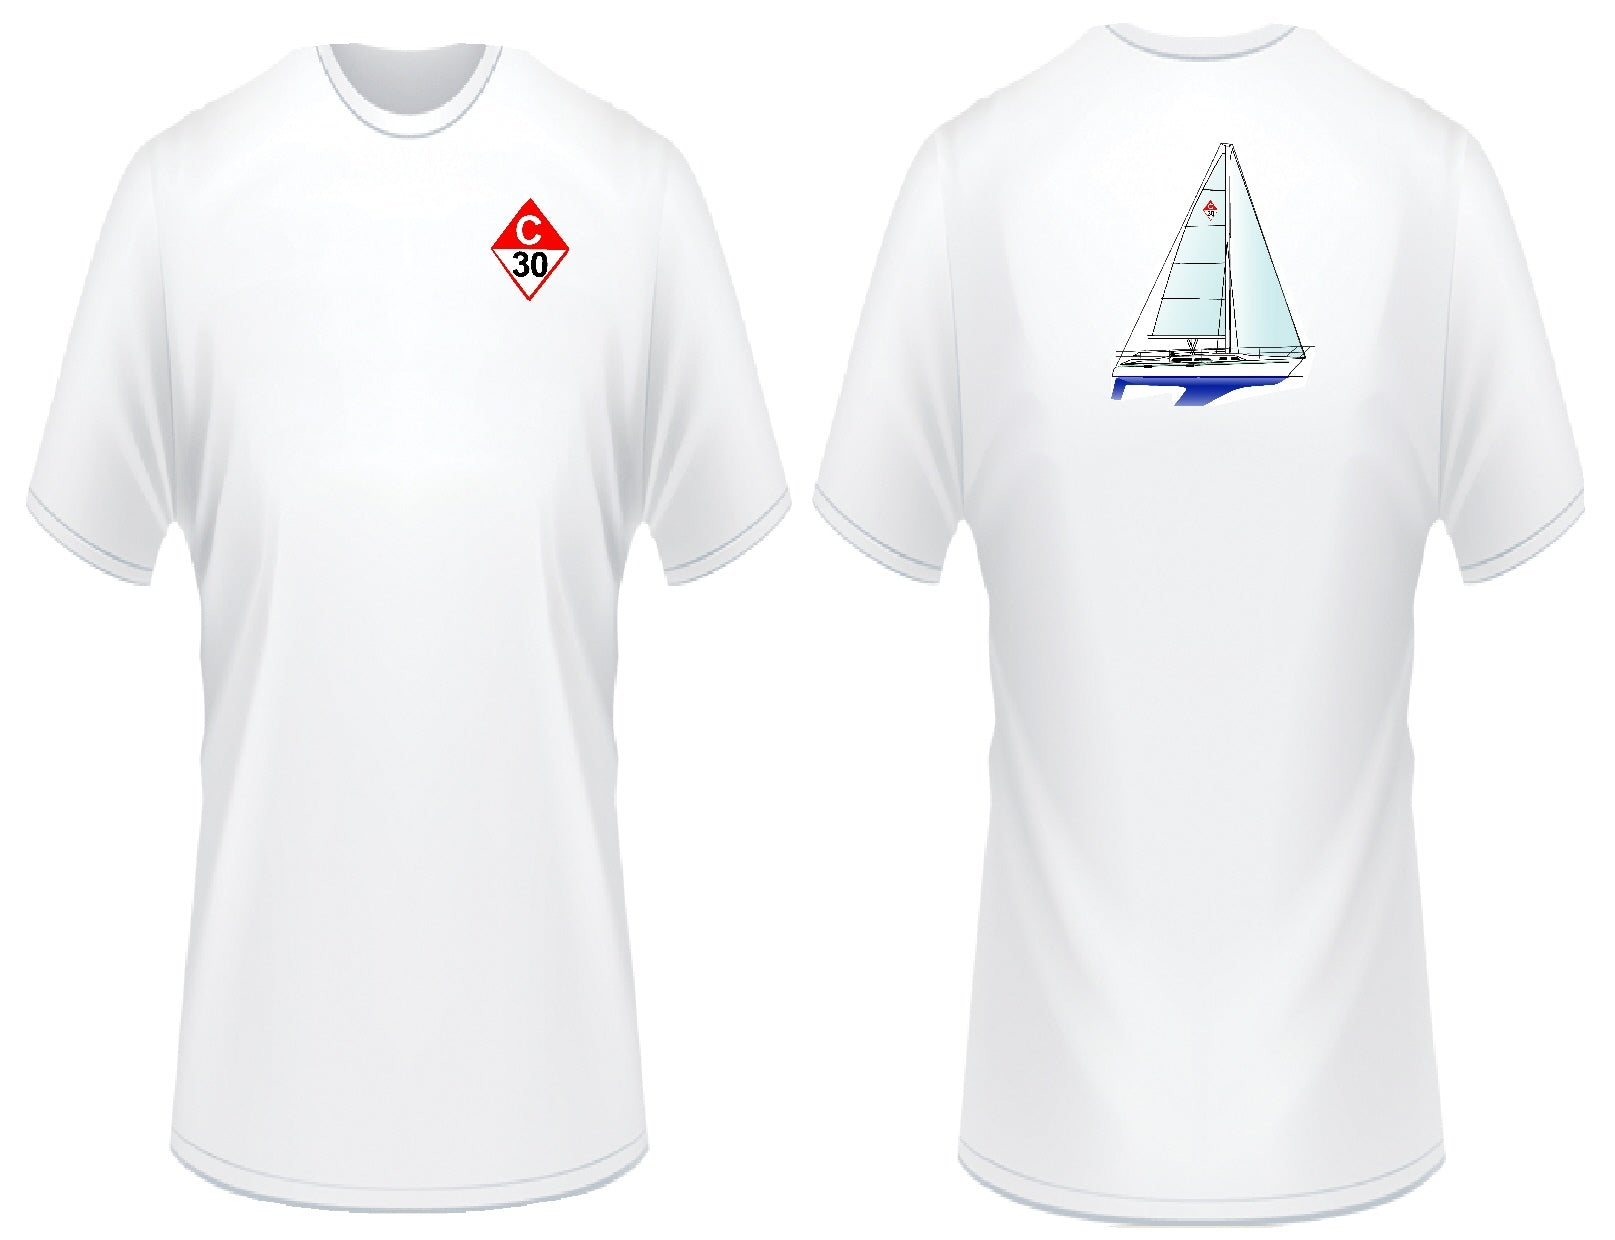 Catalina 30 T-Shirt